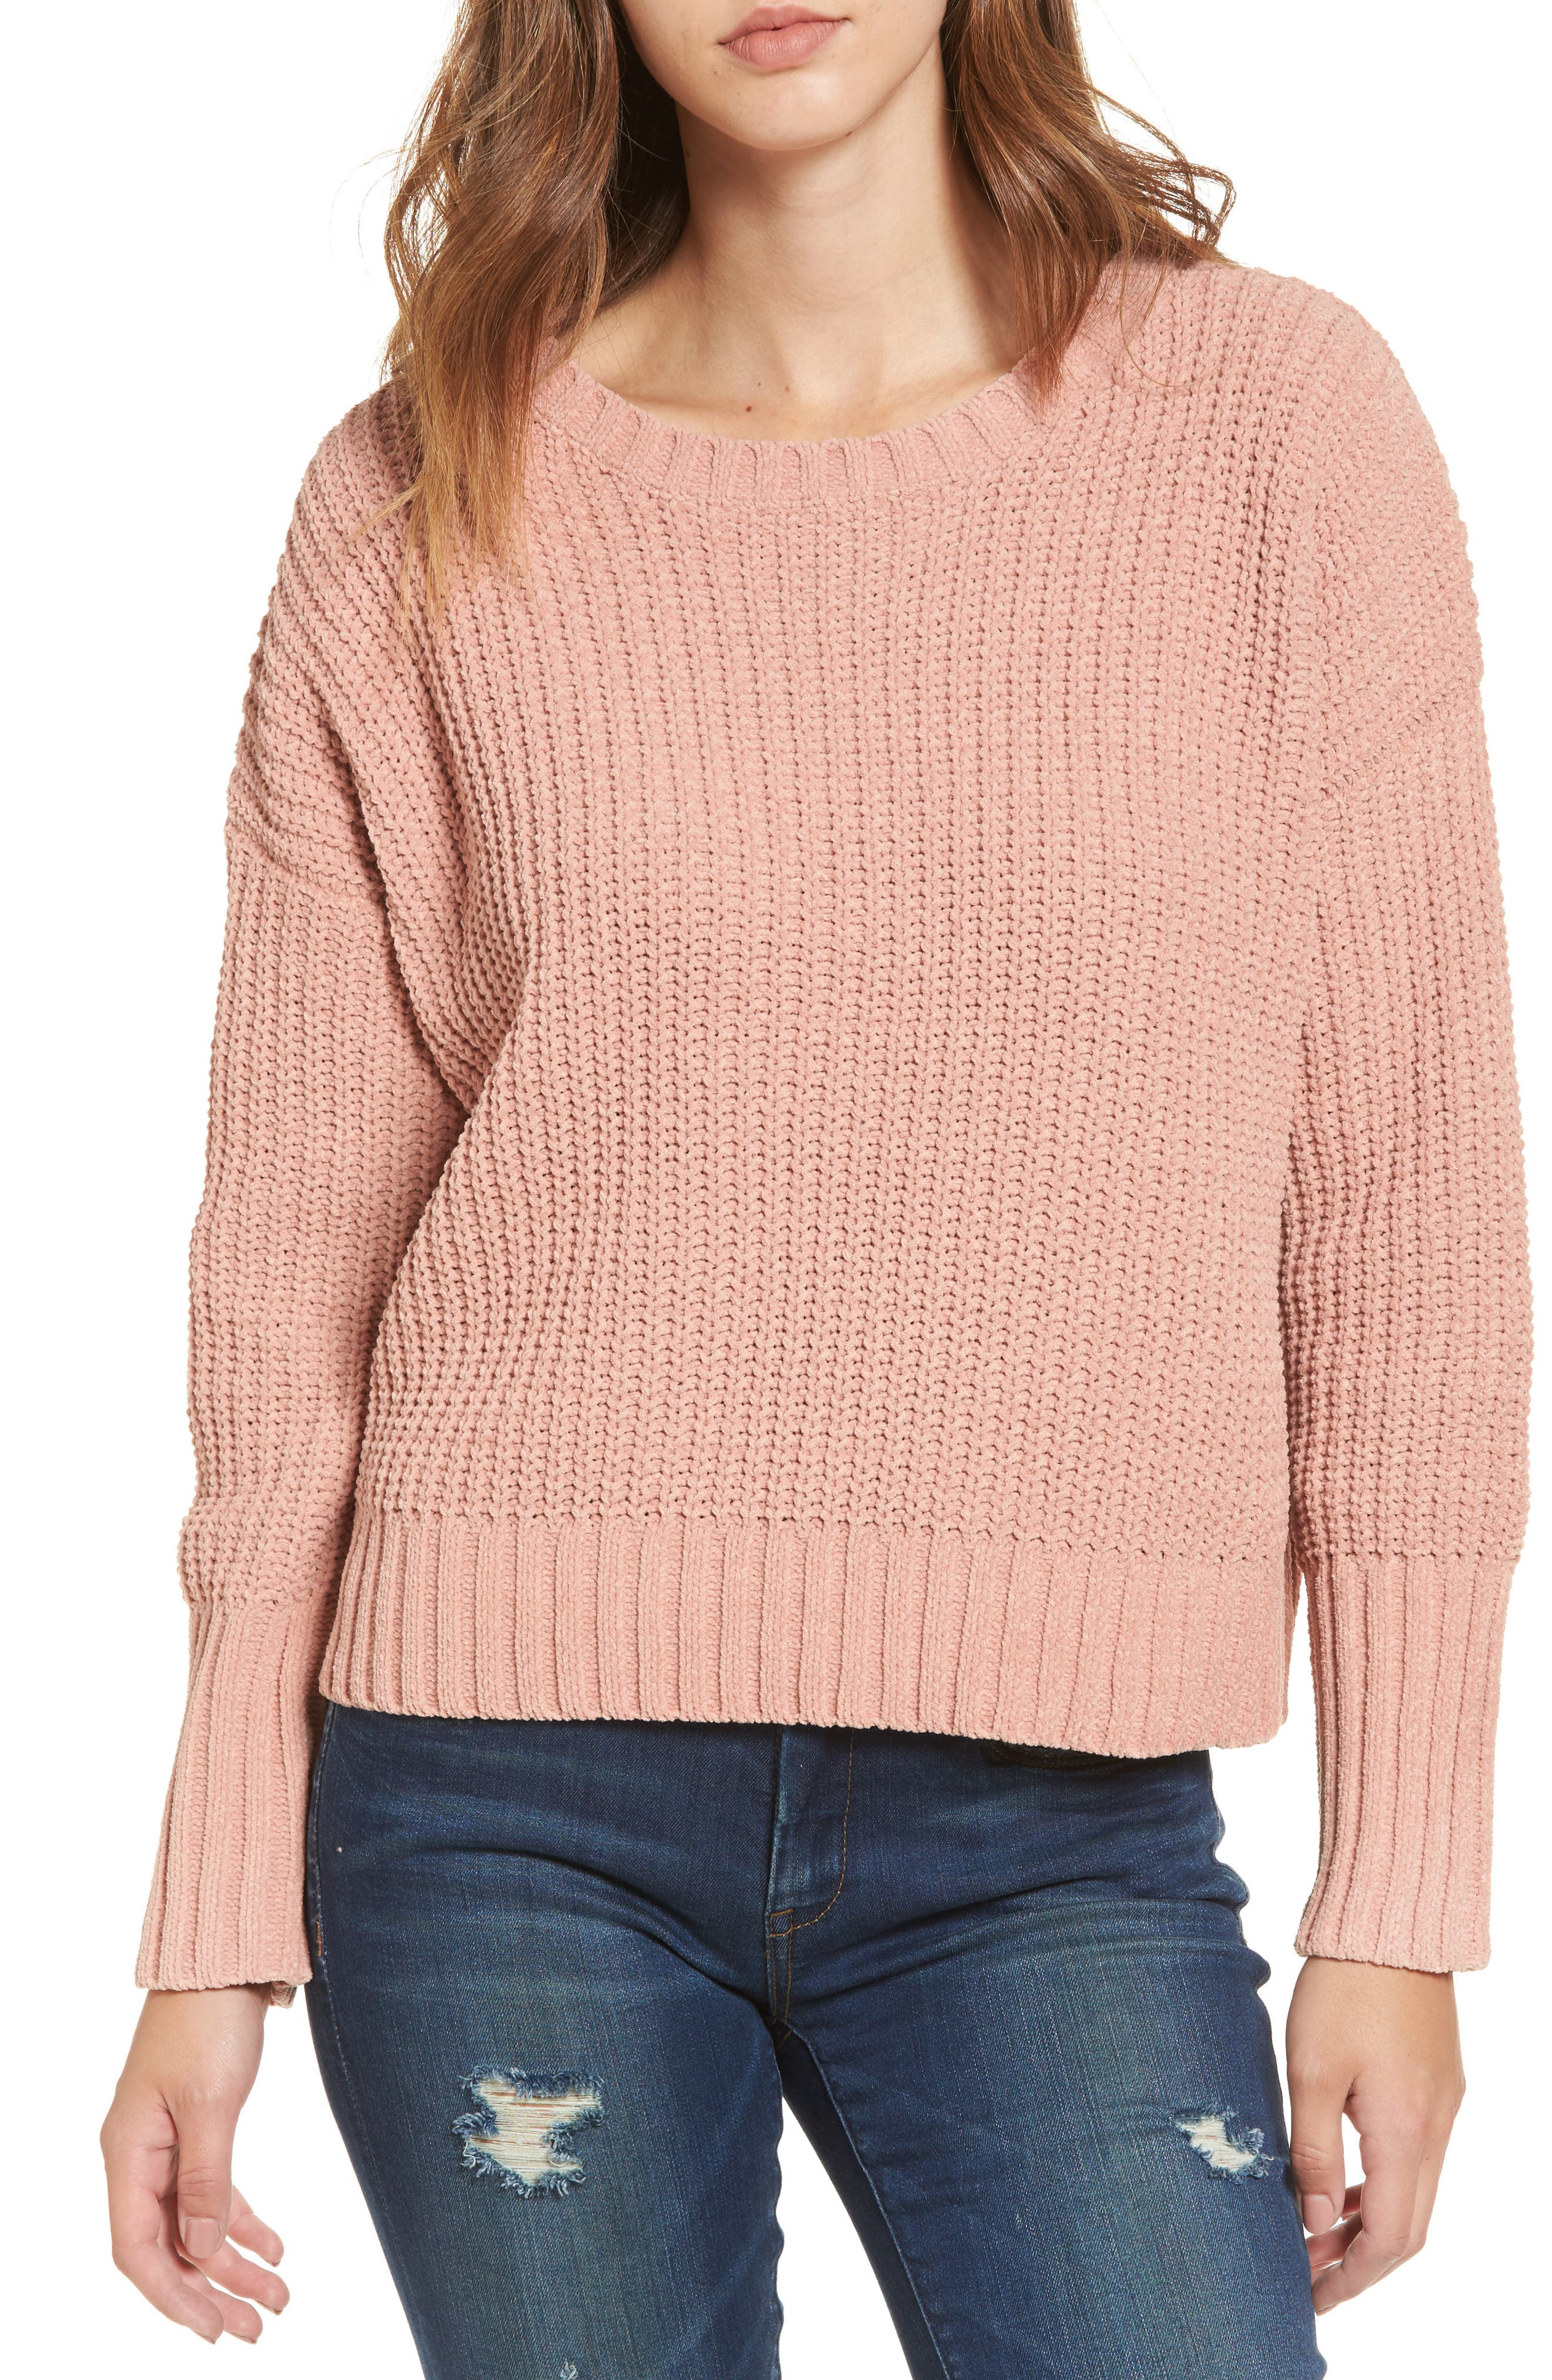 Main Image - MOON RIVER Drop Shoulder Chunky Knit Sweater